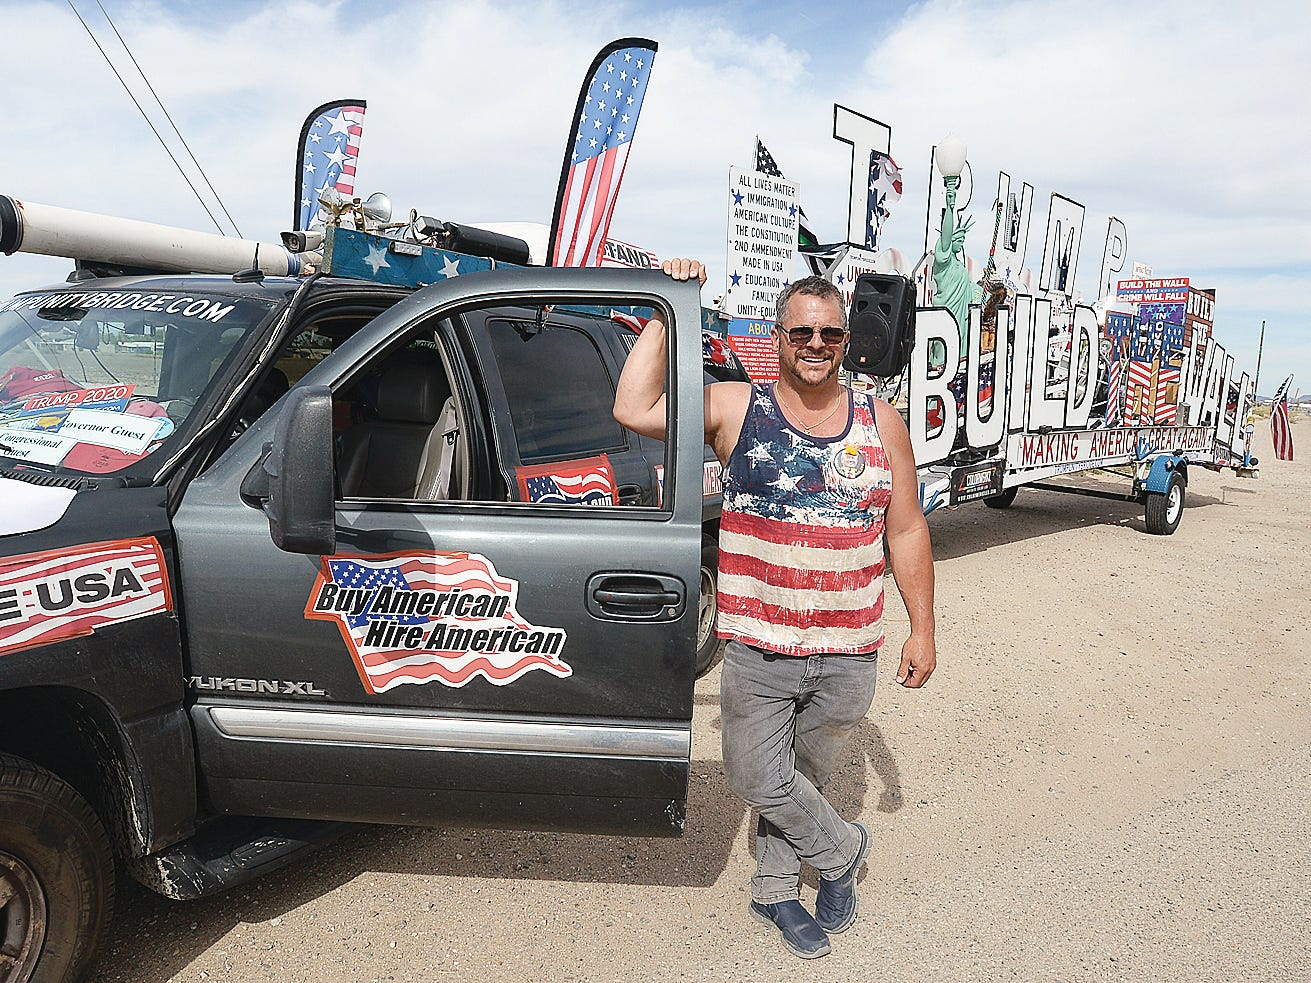 """Rob Cortis of Livonia, Mich., poses Monday, April 8, 2019, with his traveling """"Trump Unity Bridge"""" trailer display. After arriving in Yuma, Ariz., he parked across the street from the U.S. Border Patrol Yuma Sector Headquarters."""